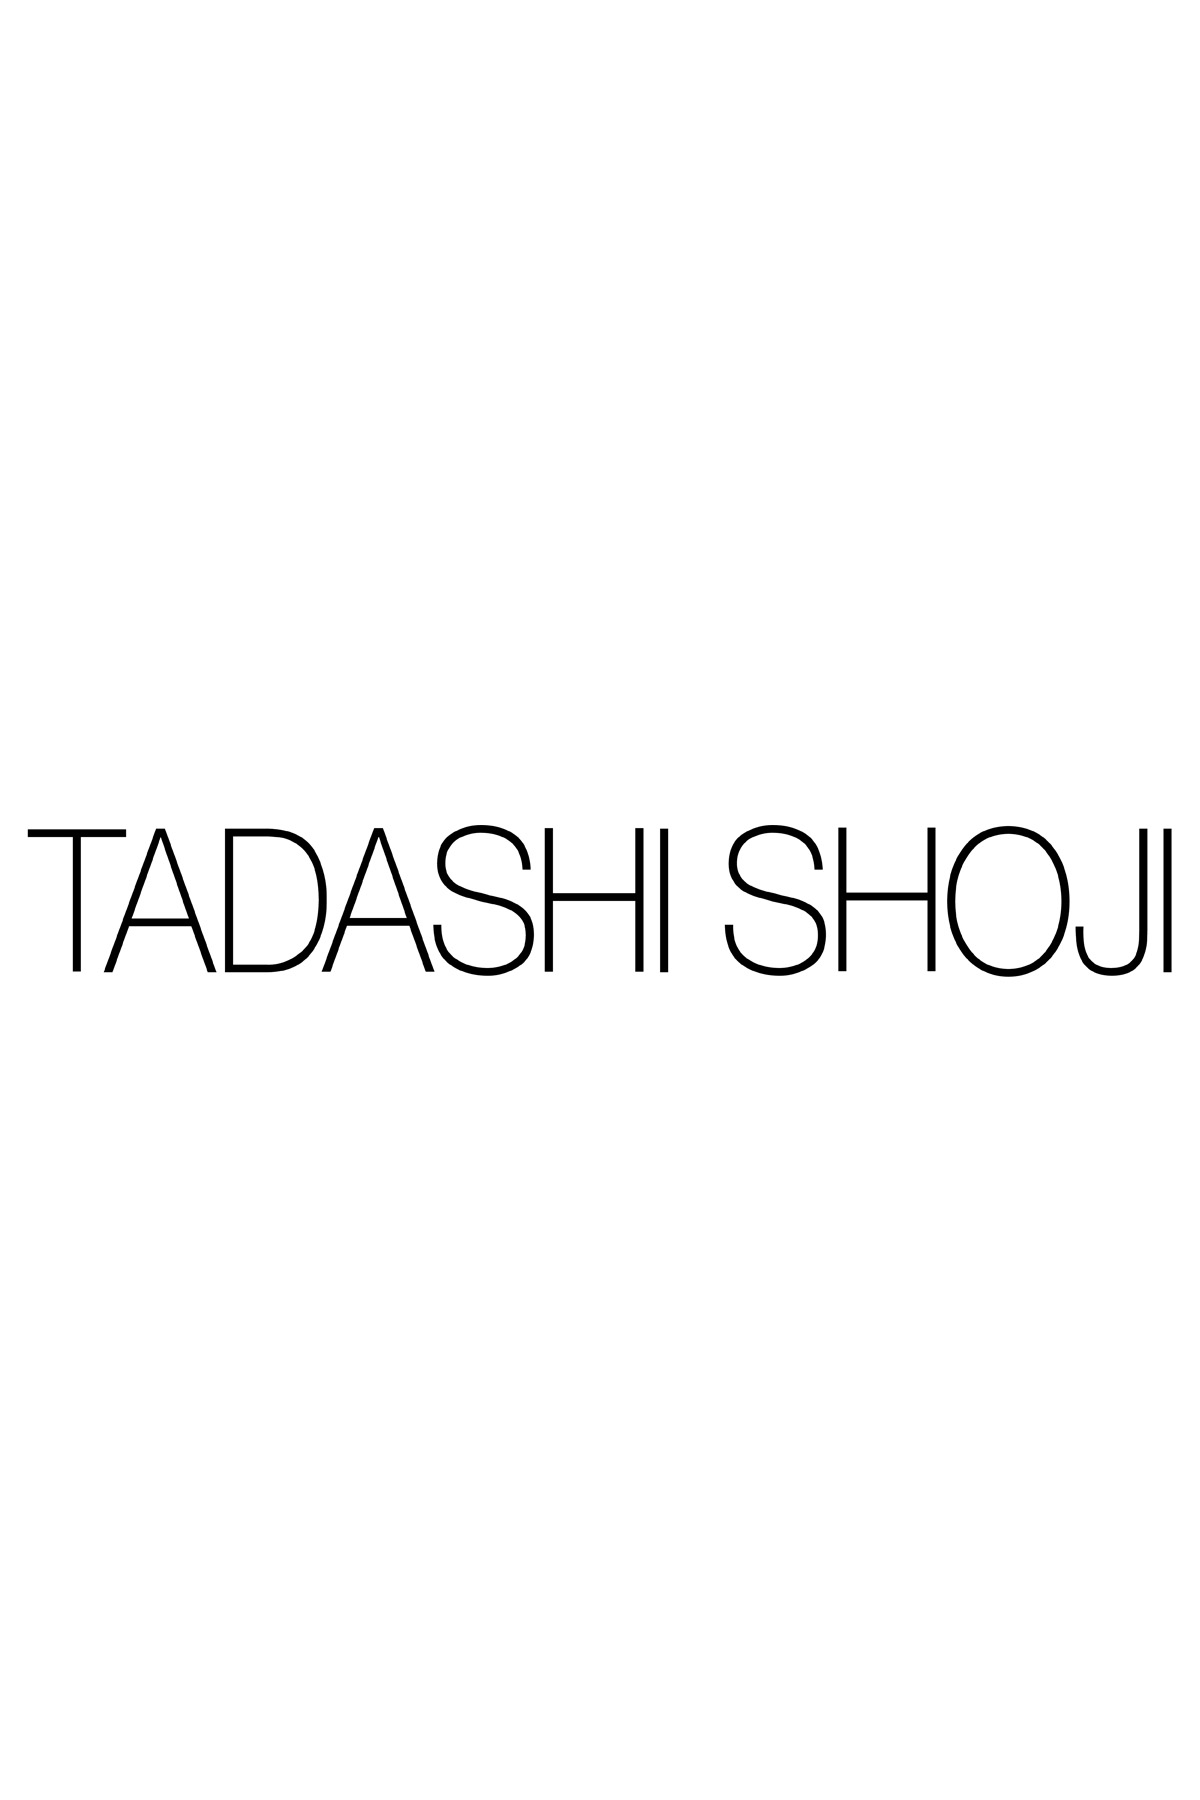 Tadashi Shoji Plus Size - Corded Embroidery on Tulle Cap Sleeve Dress - Detail